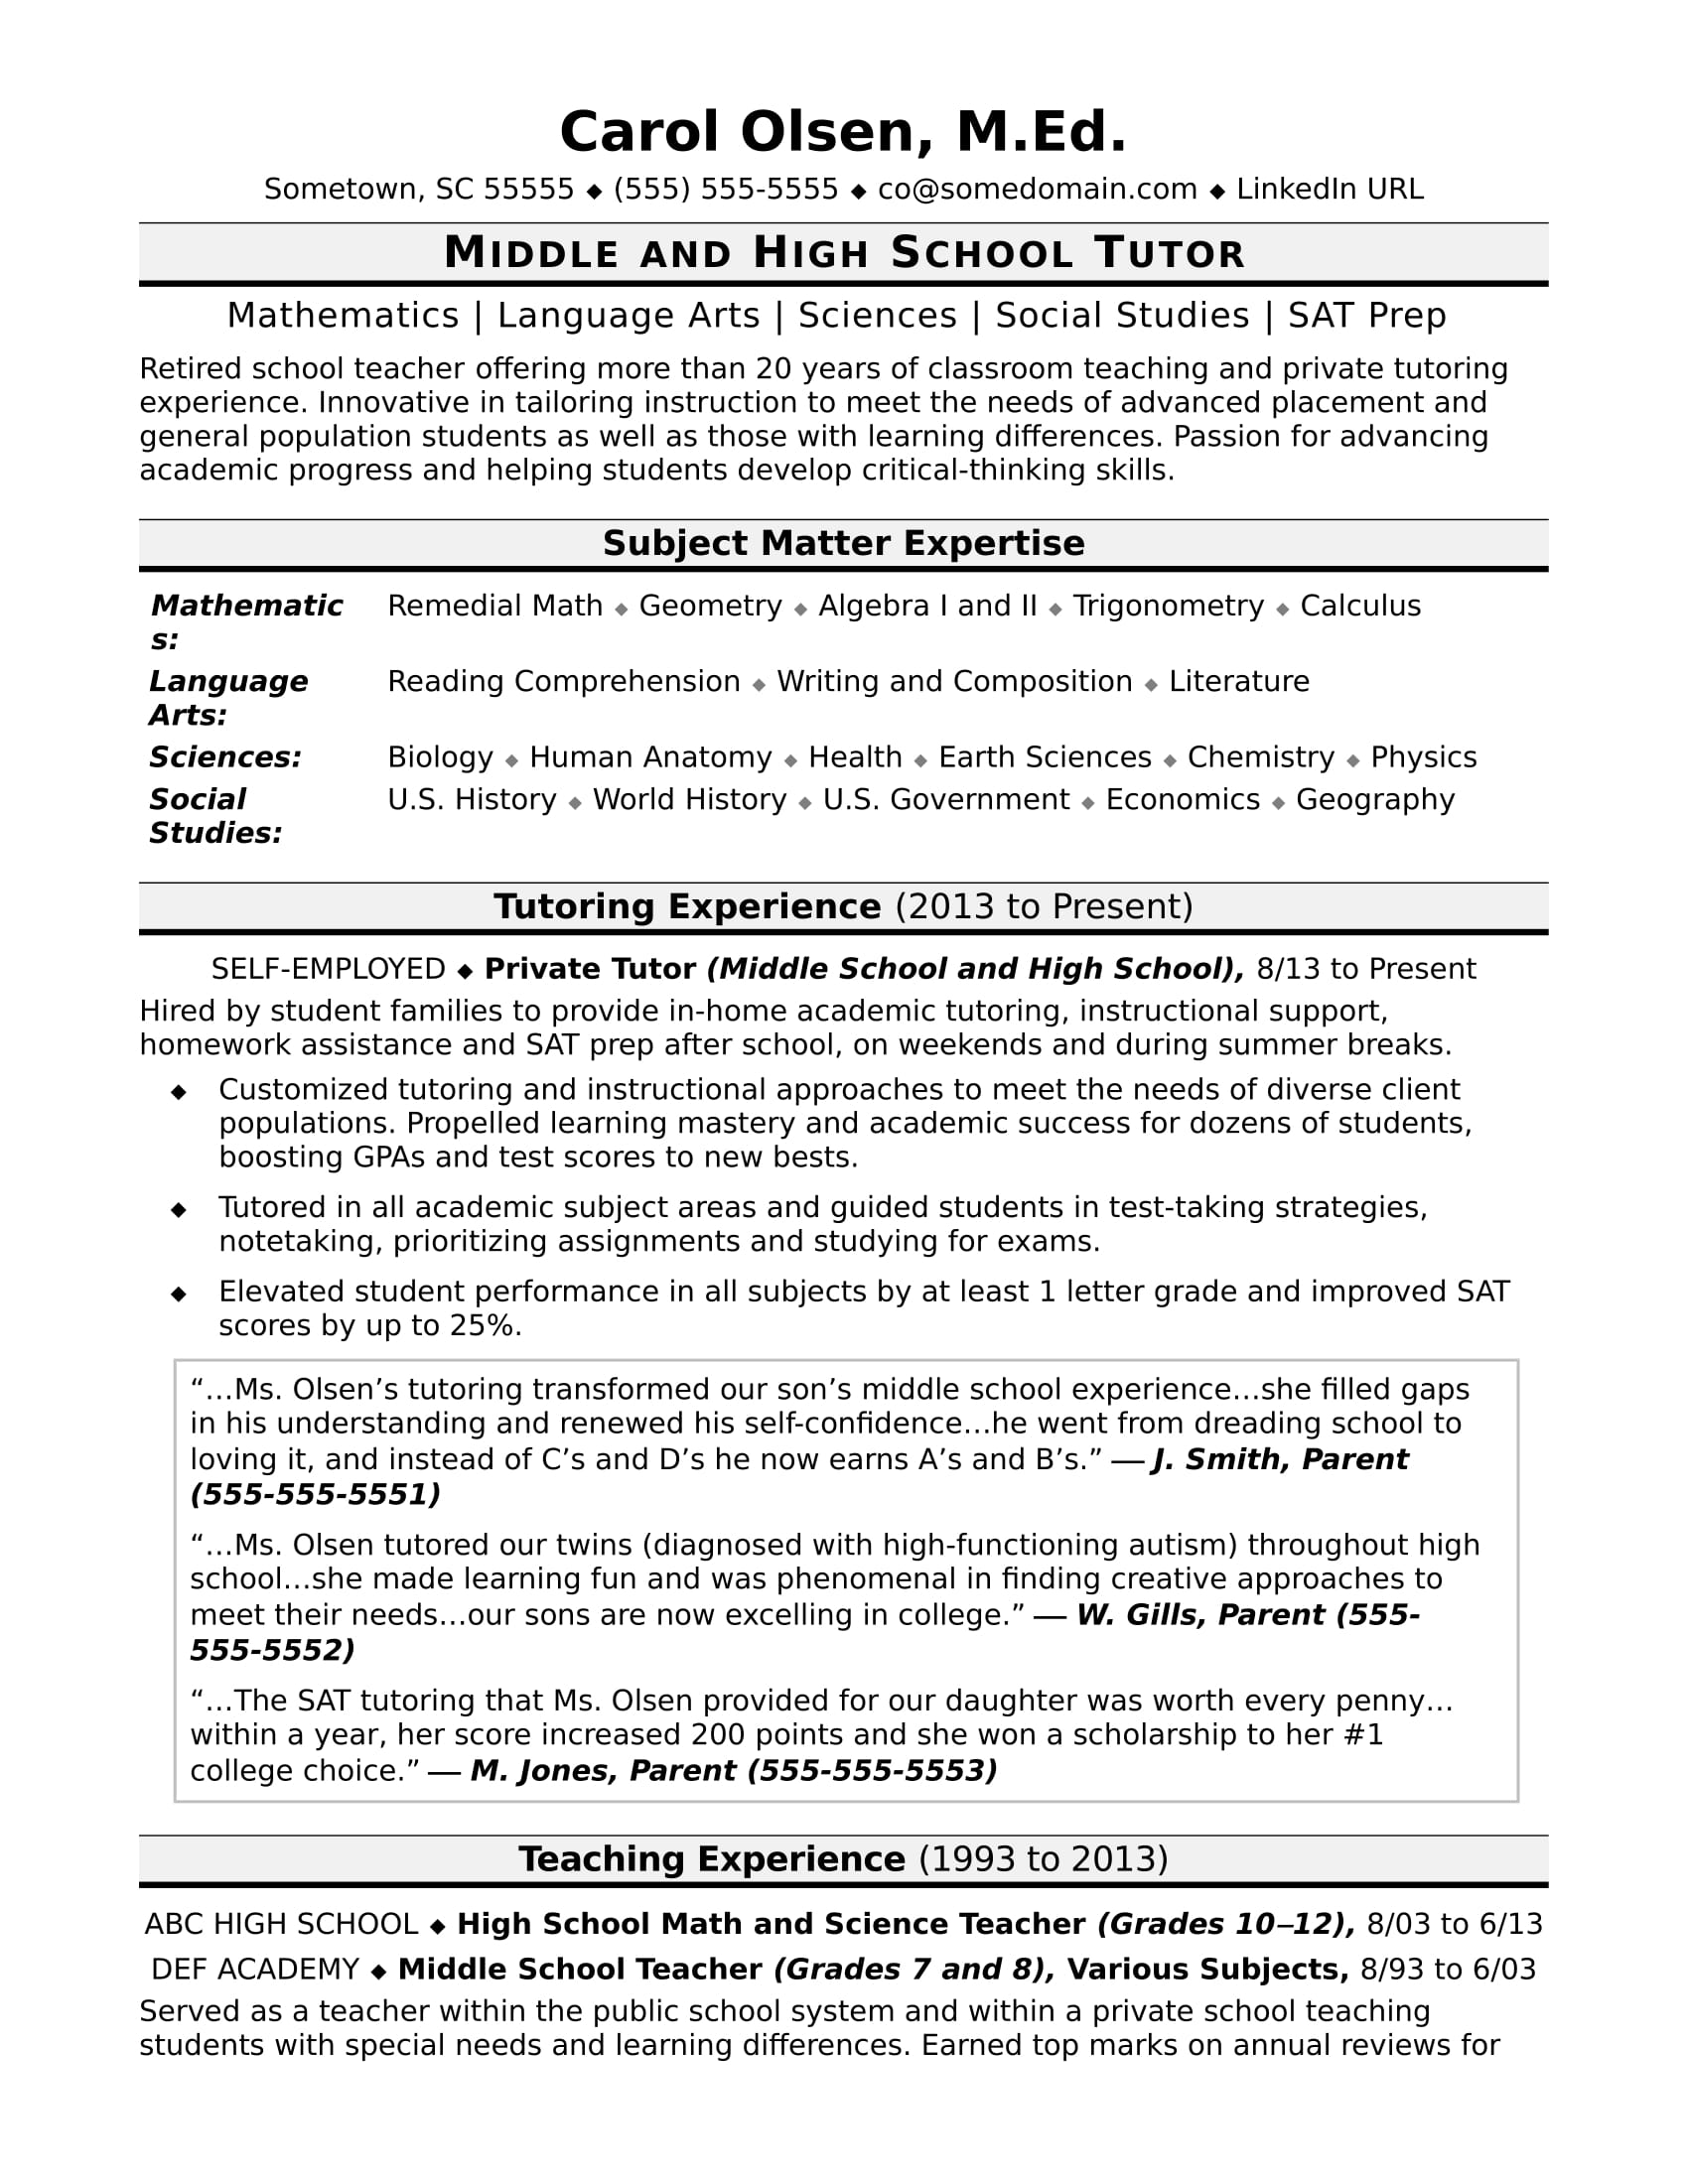 tutor resume sample - Health Science Teacher Resume